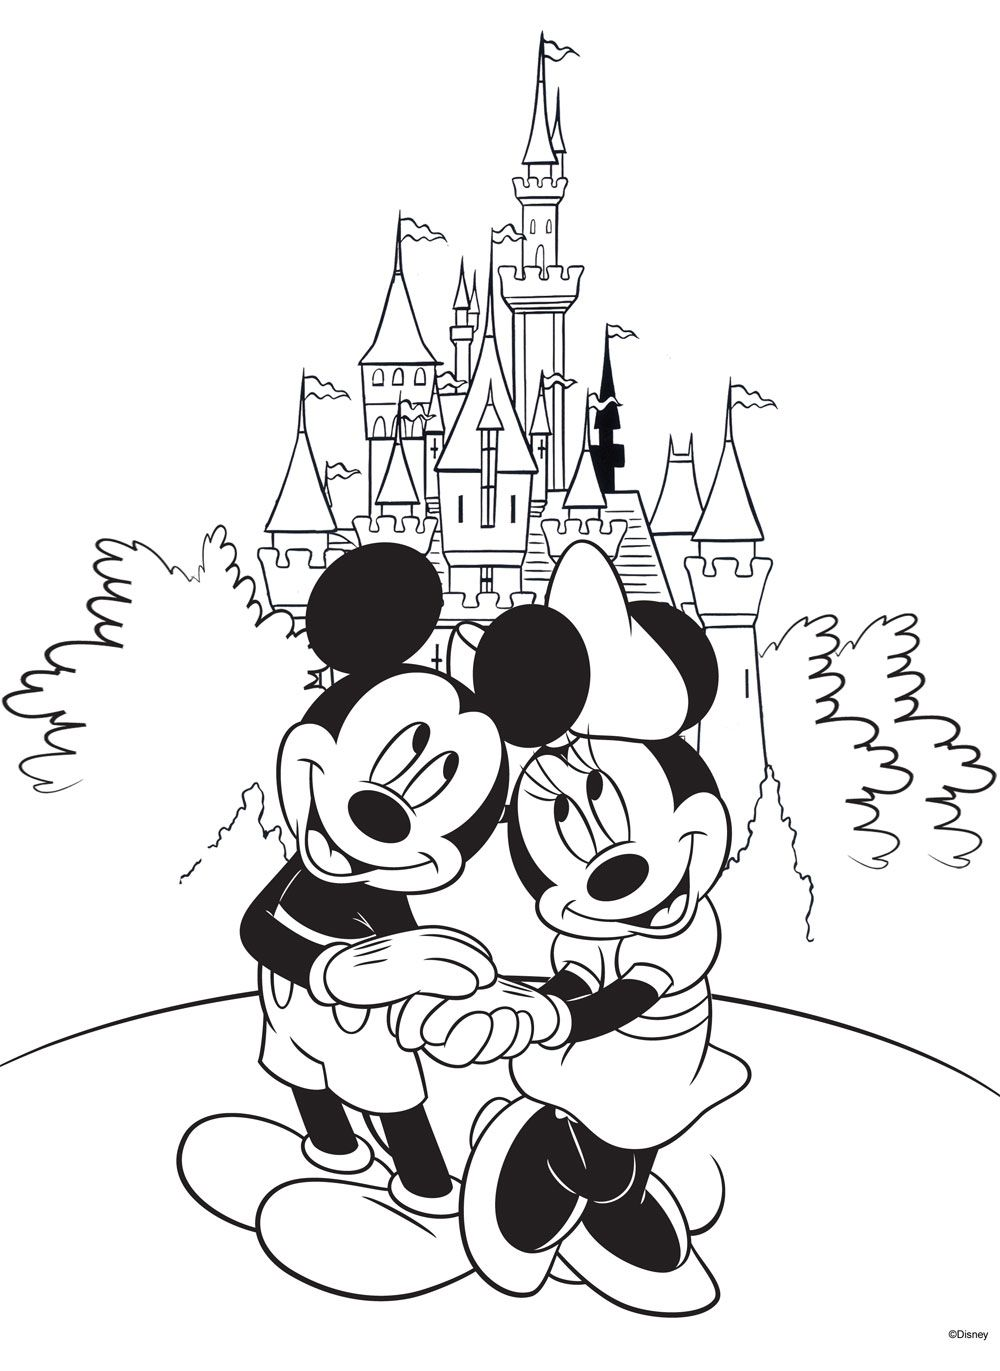 Free Disney Coloring Page! Printable Disney coloring